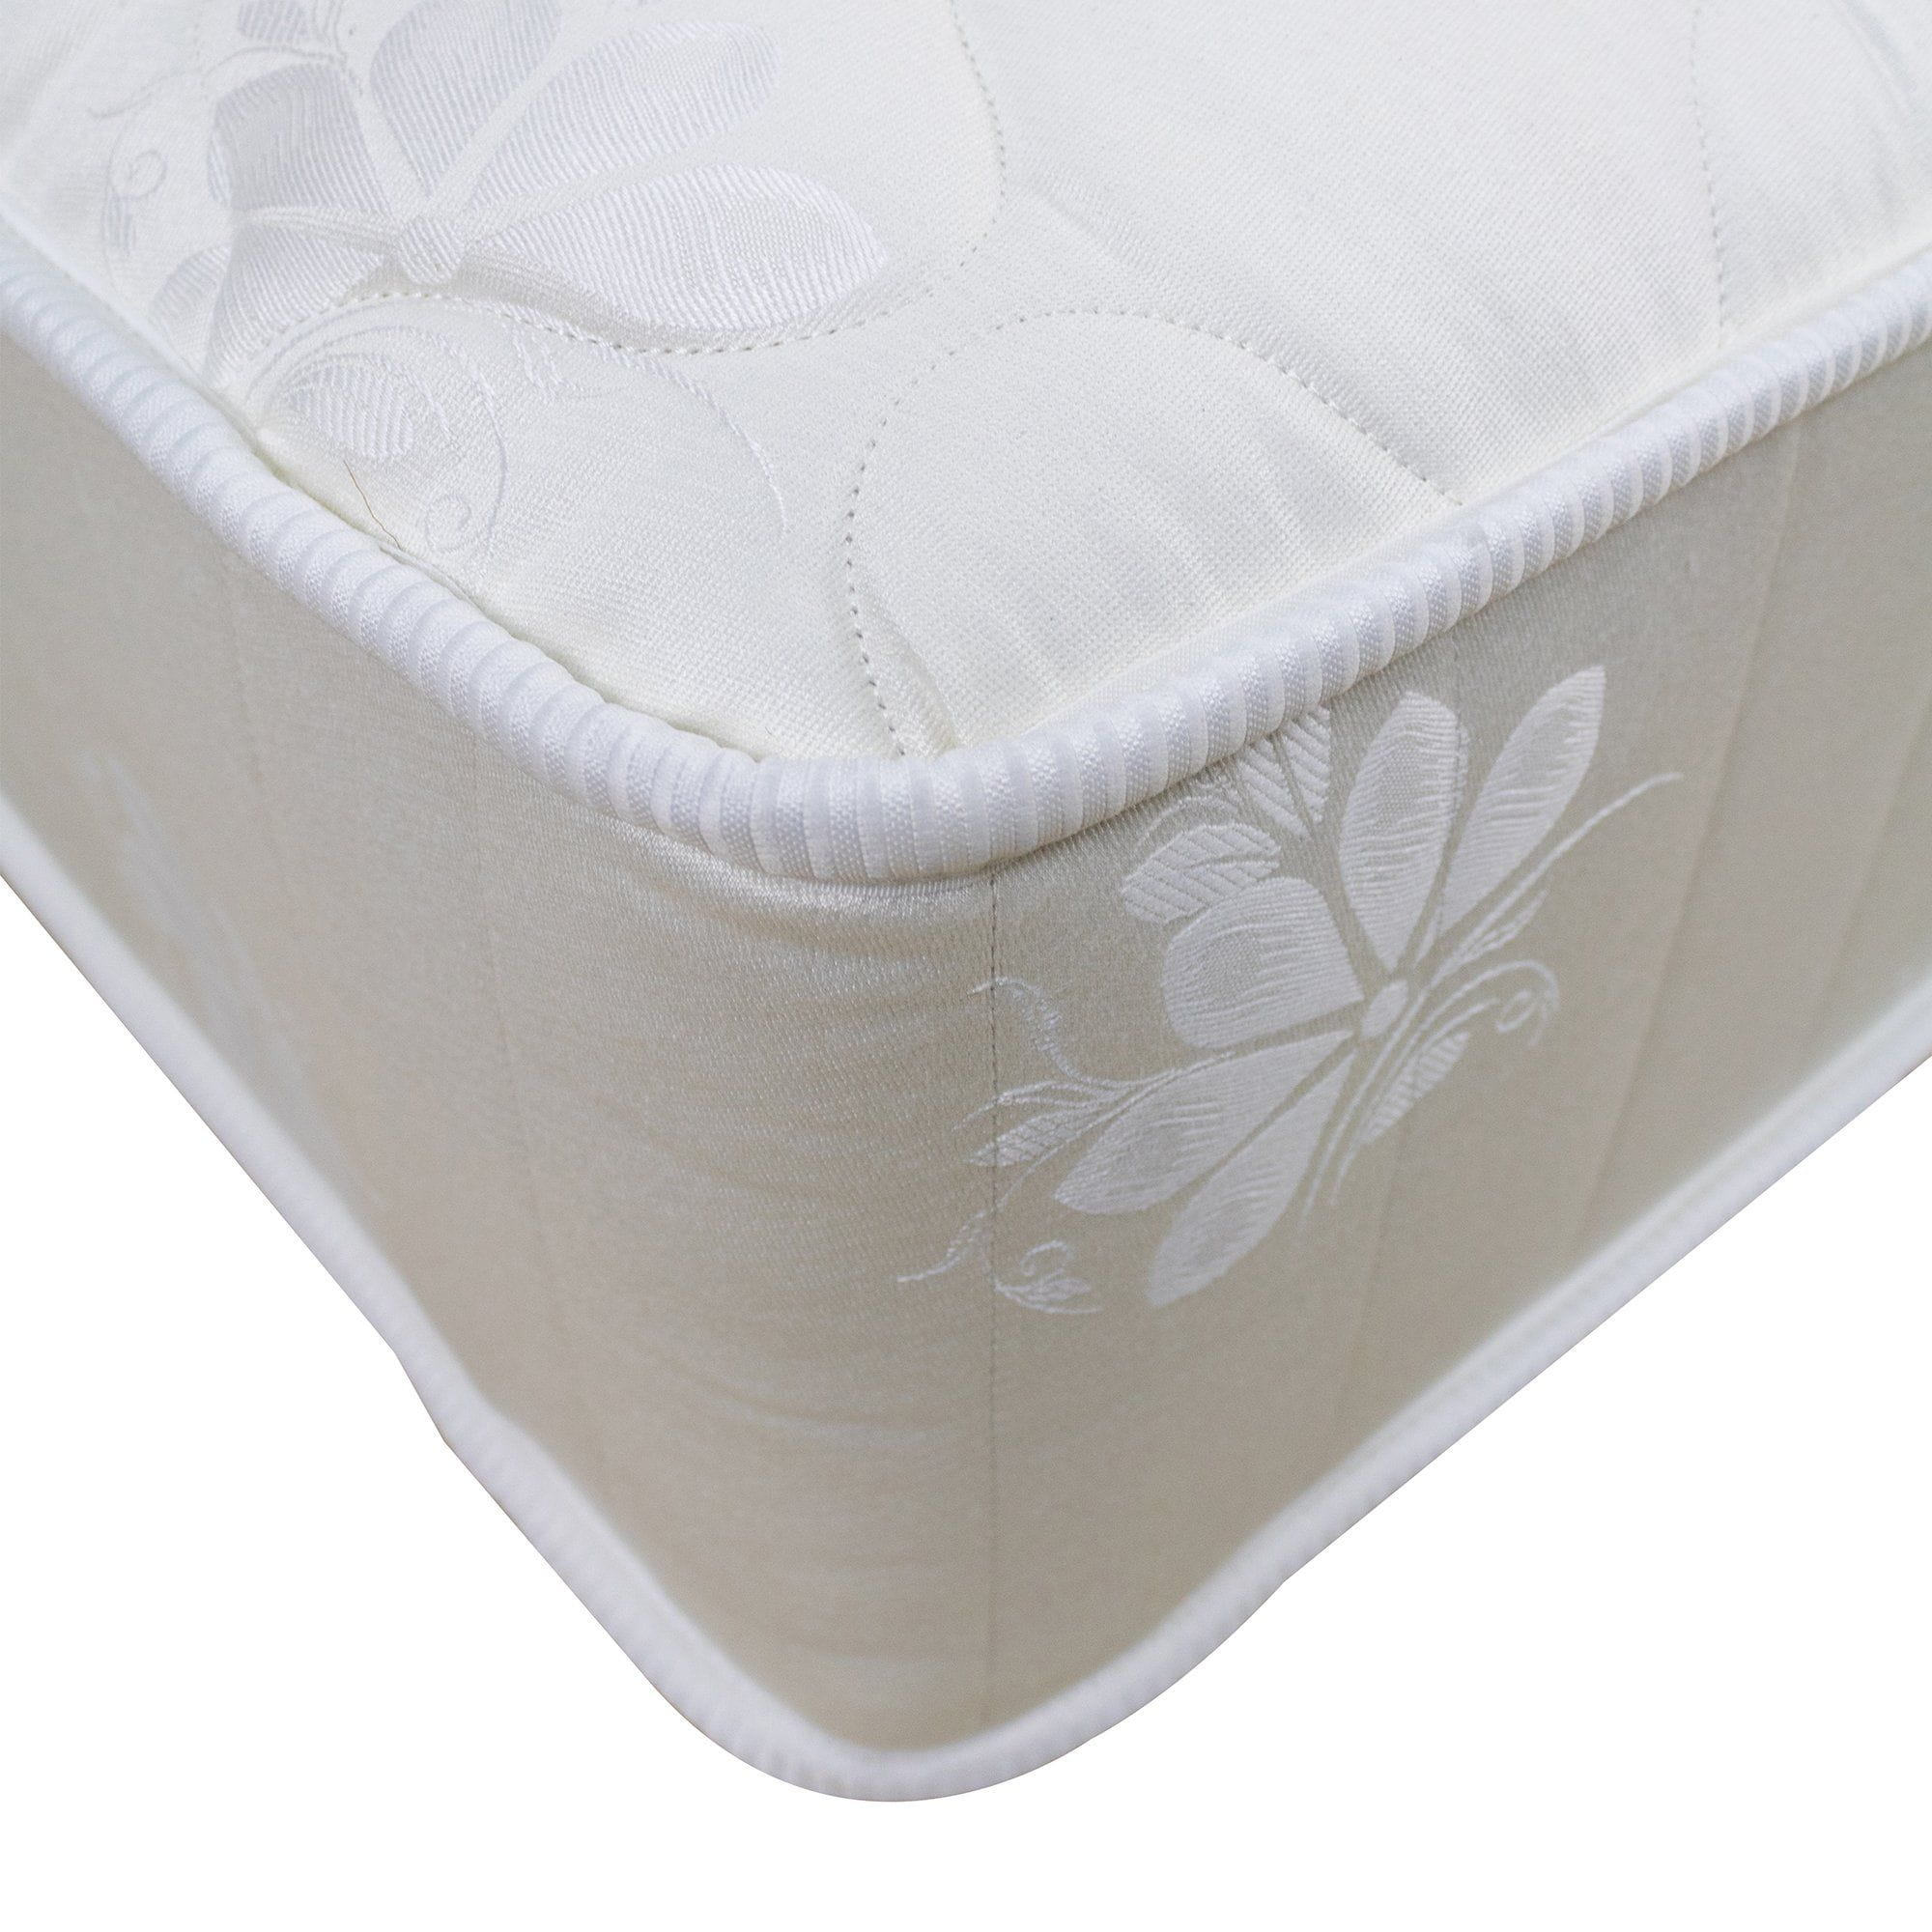 Royal Crown Latex Deluxe Mattress